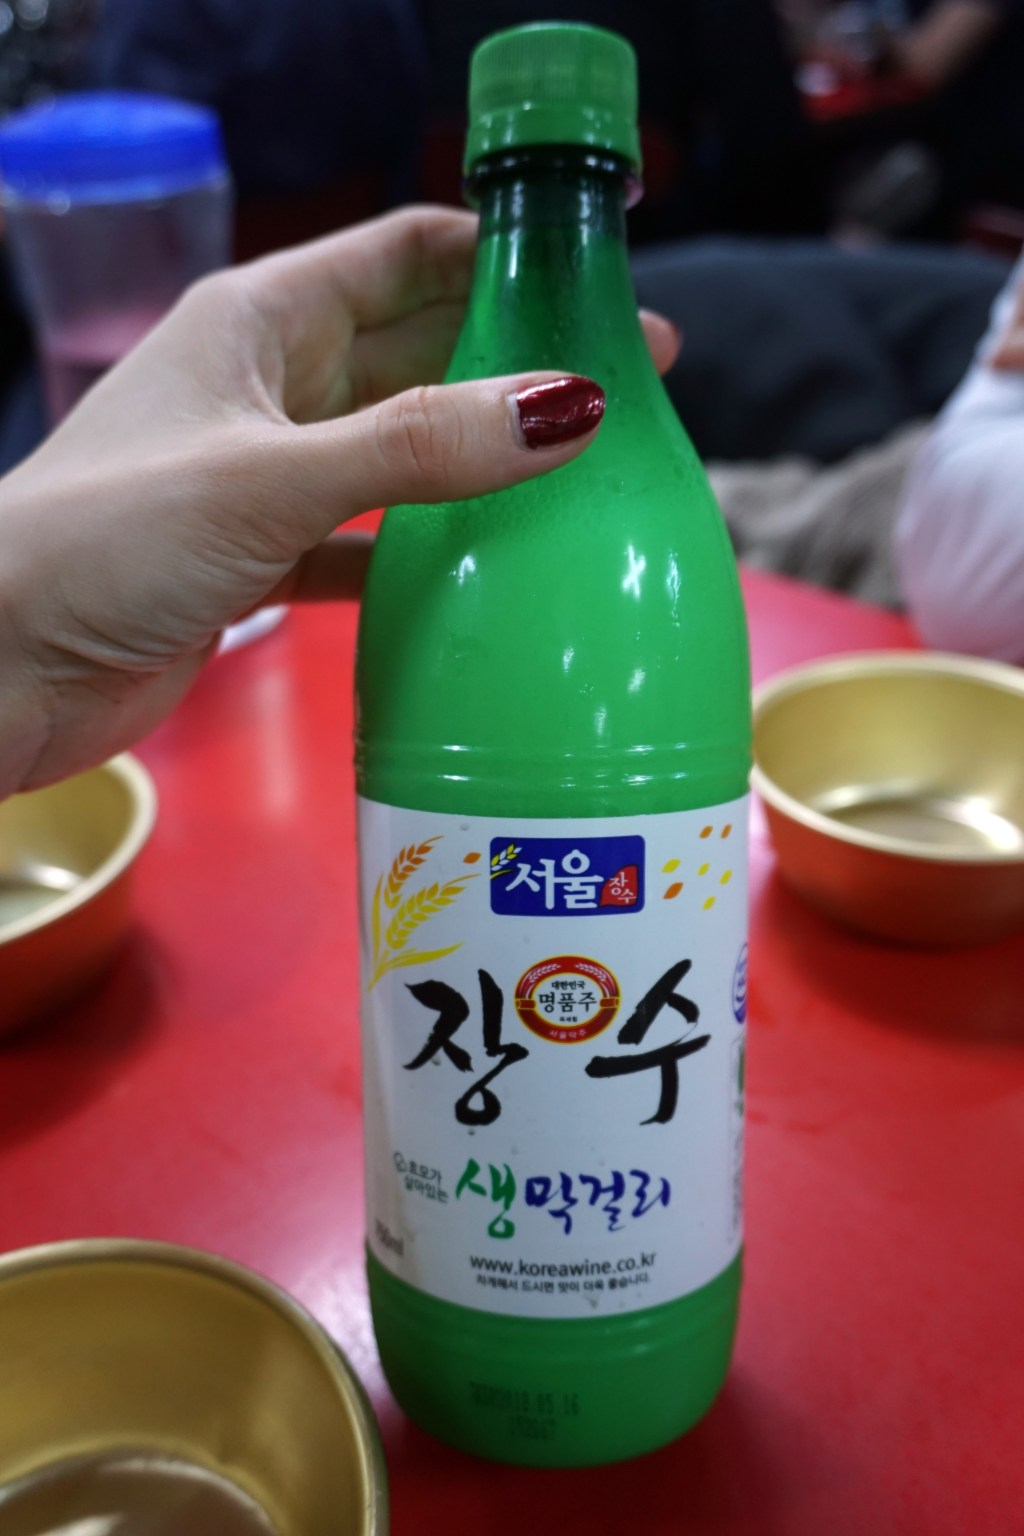 Saeng makgeolli - Korean rice wine